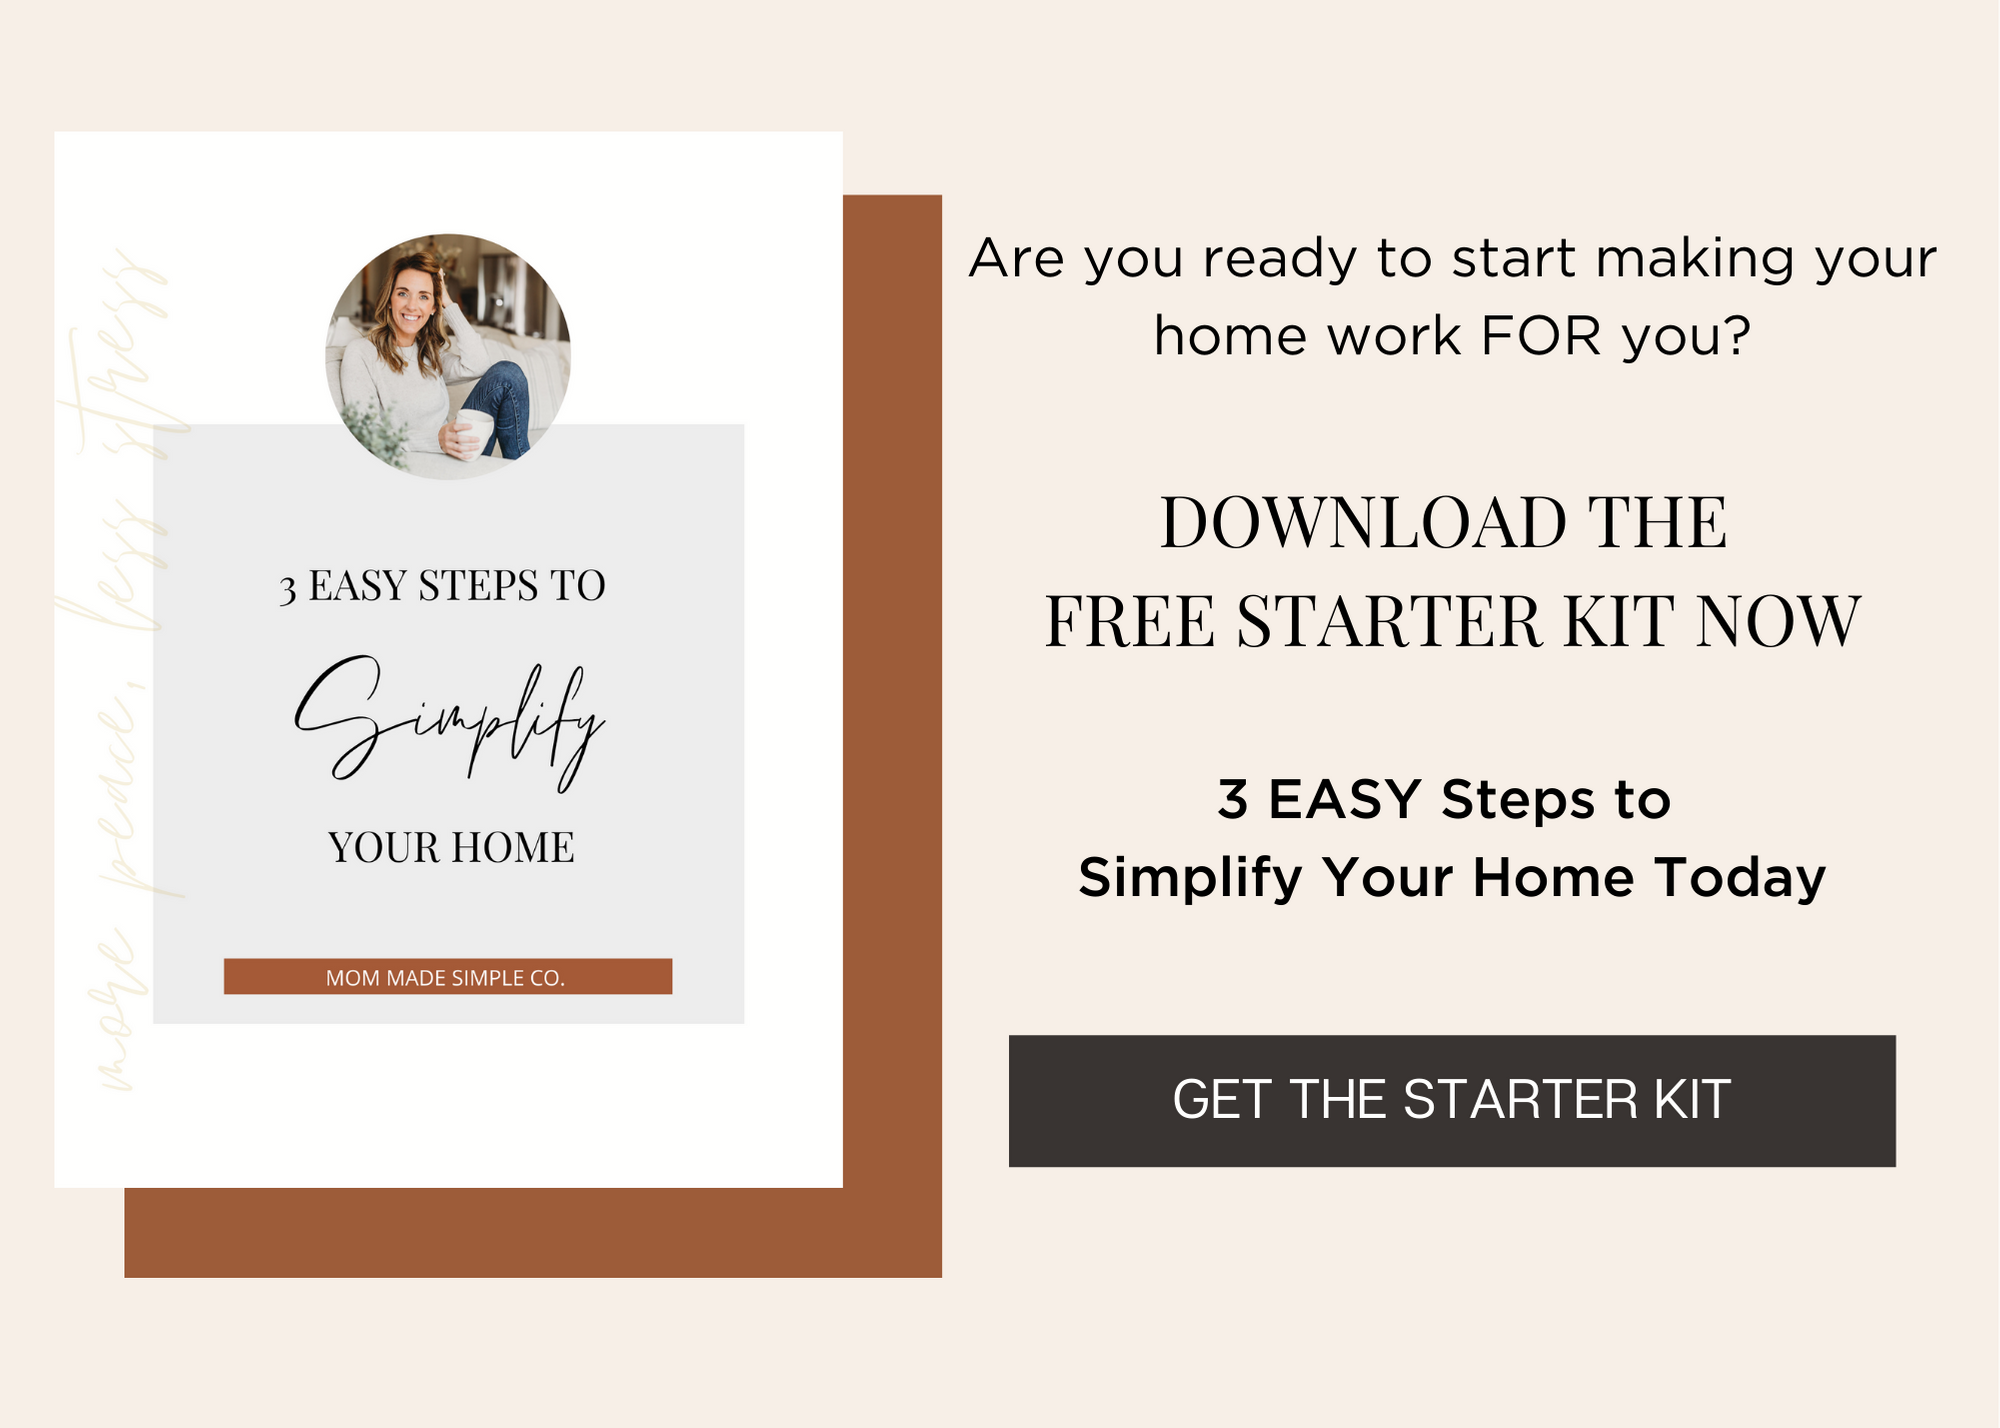 Simplify Your Home